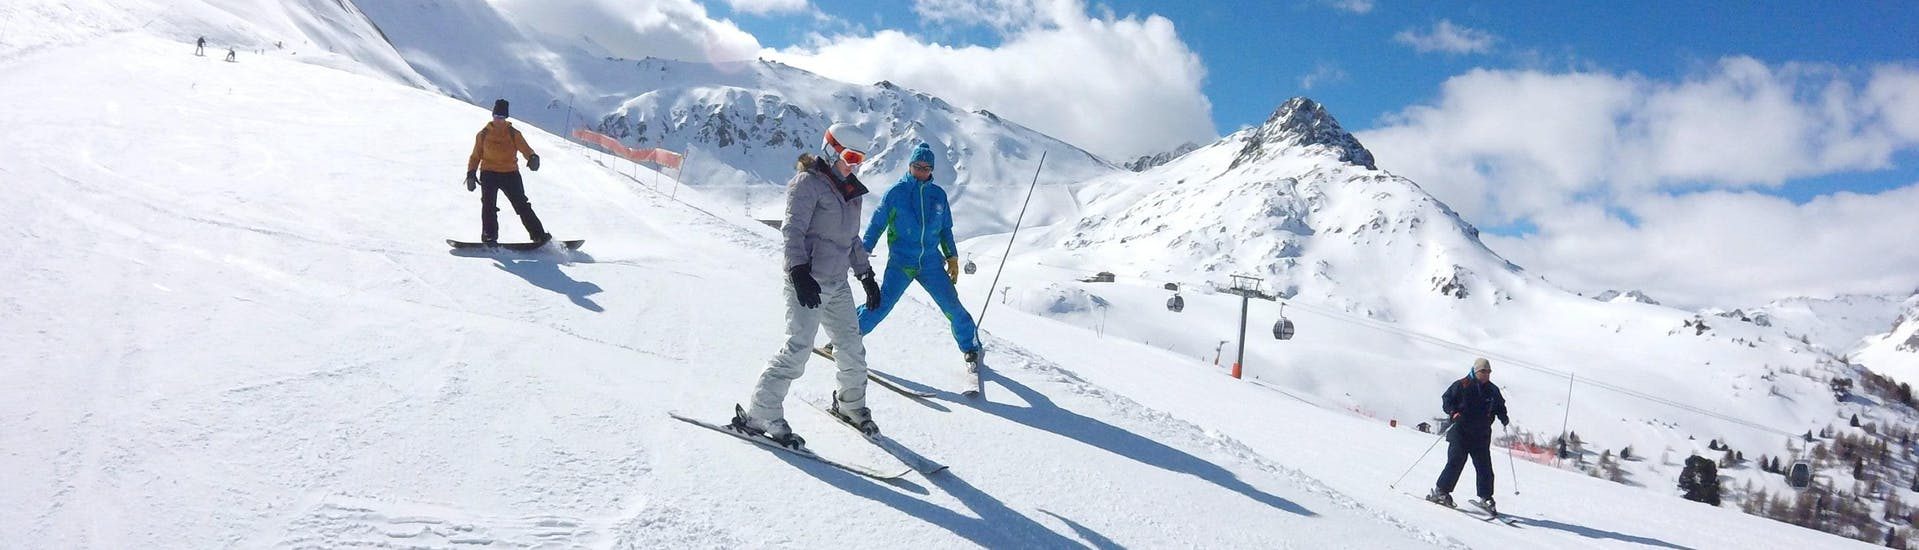 A skier is learning to ski thanks to the help of her ski instructor from the ski school ESI Valfréjus during her Private Ski Lessons for Adults - All Levels.